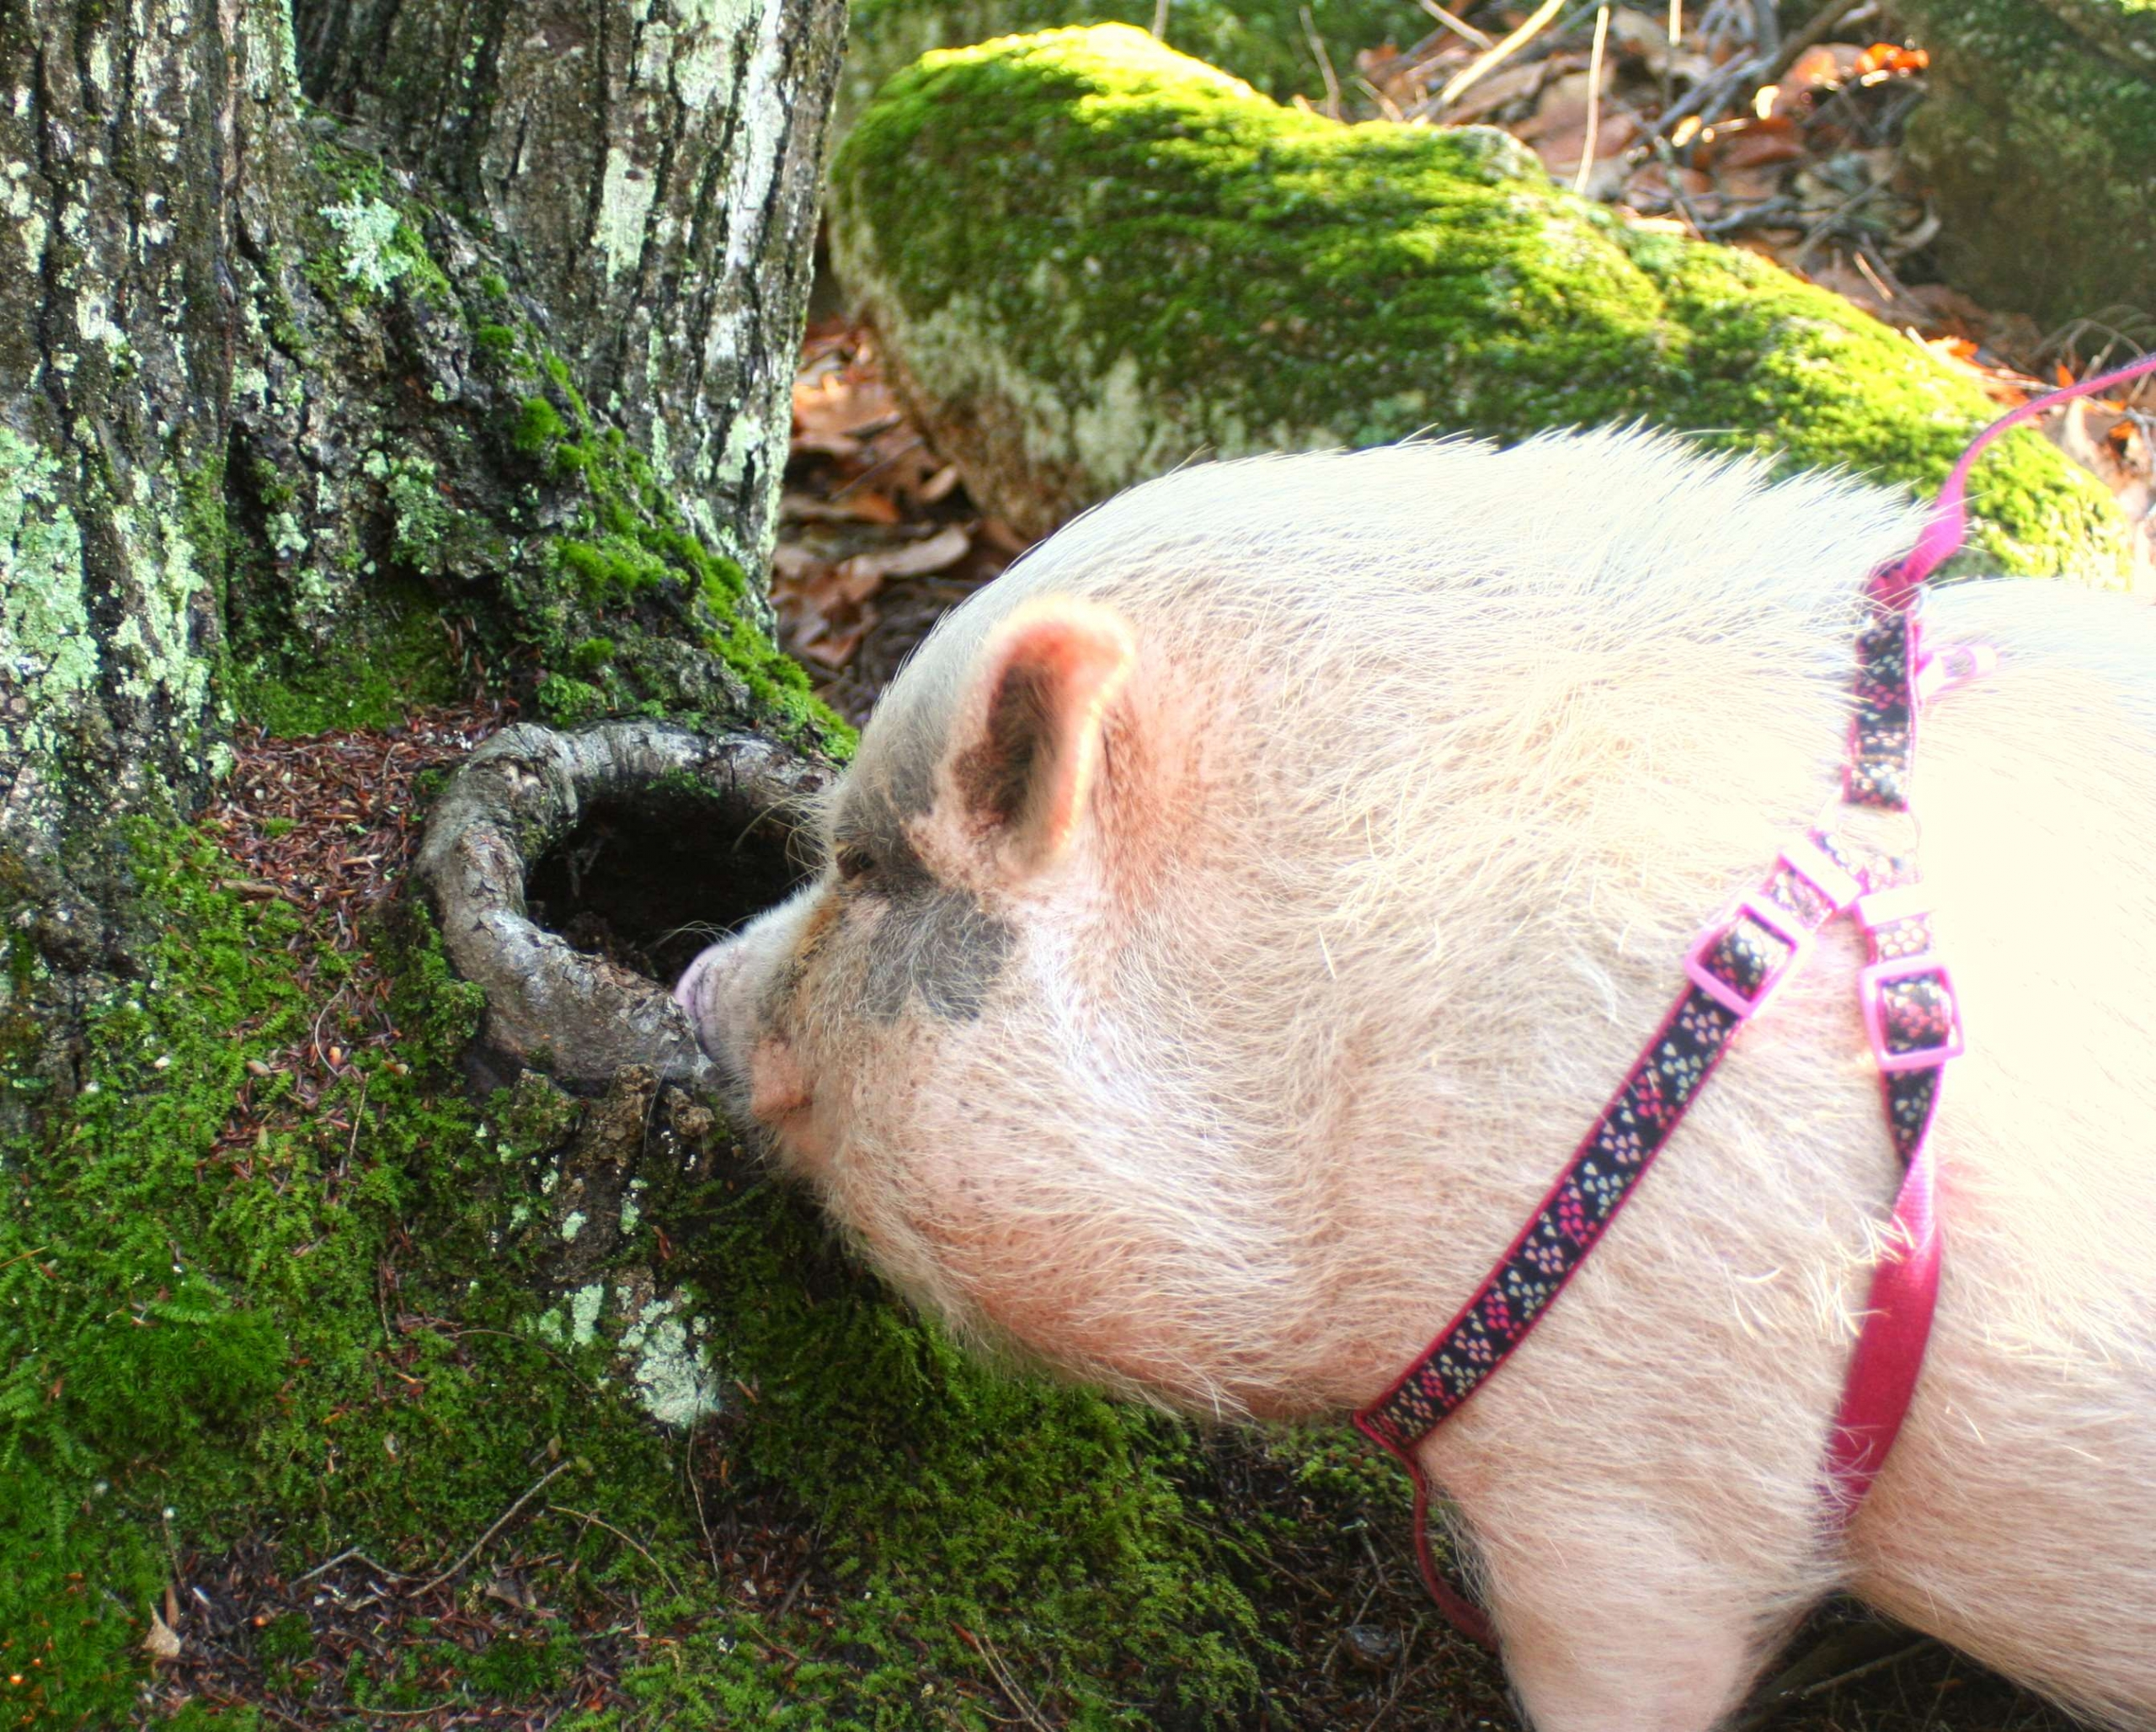 Mini-pig Tazzy D. Moo will dress as a groundhog on Feb 1. Who needs Punxsutawney Phil when a New Hampshire pig can do the job? Visit her from 11 a.m. to 3 p.m. at Miles Smith Farm in Loudon.